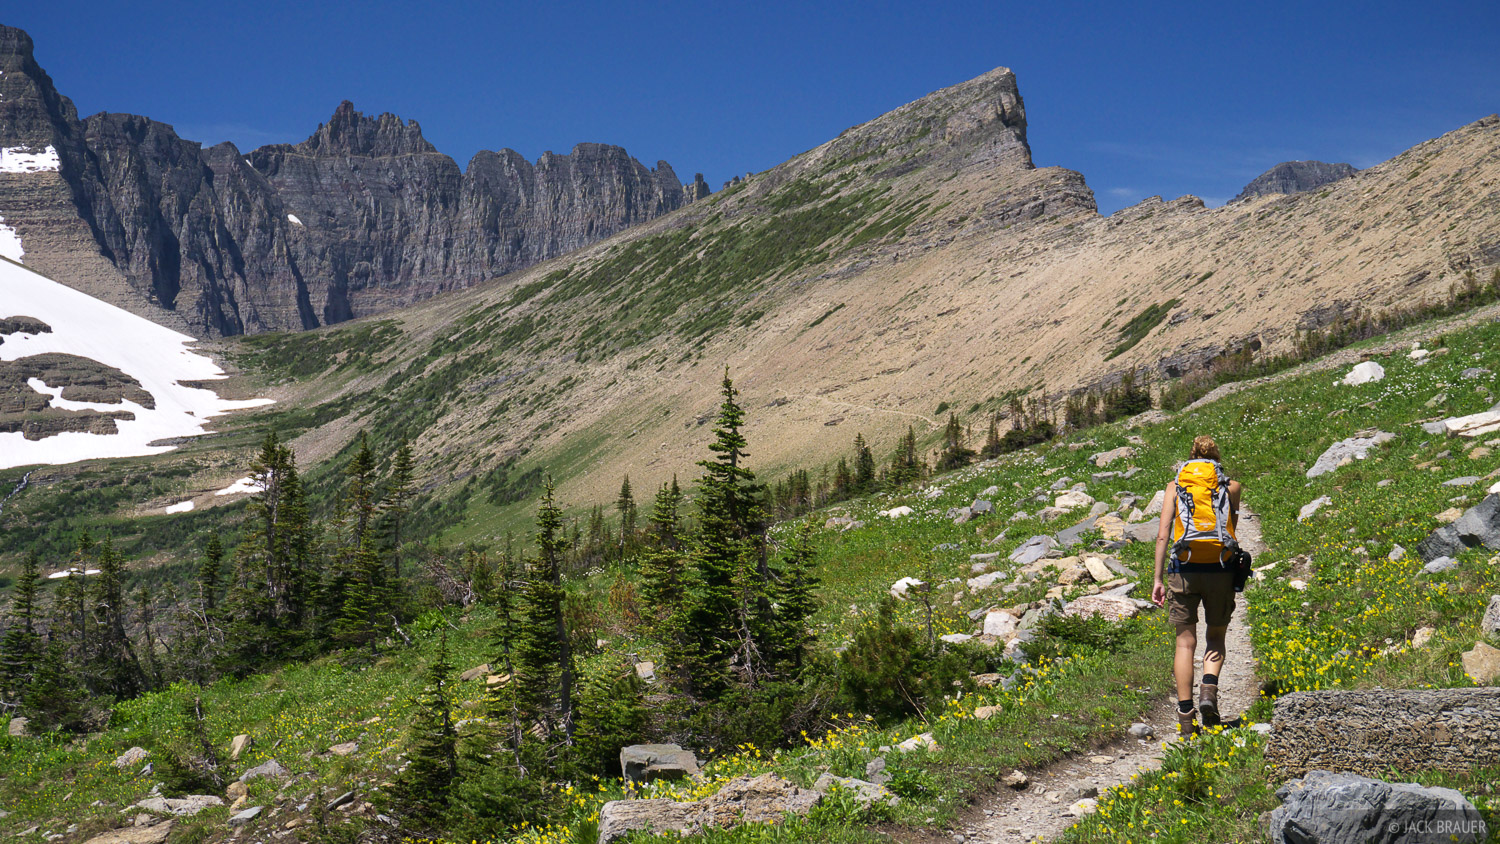 Hiking towards Piegan Pass, from the Going to the Sun Road.